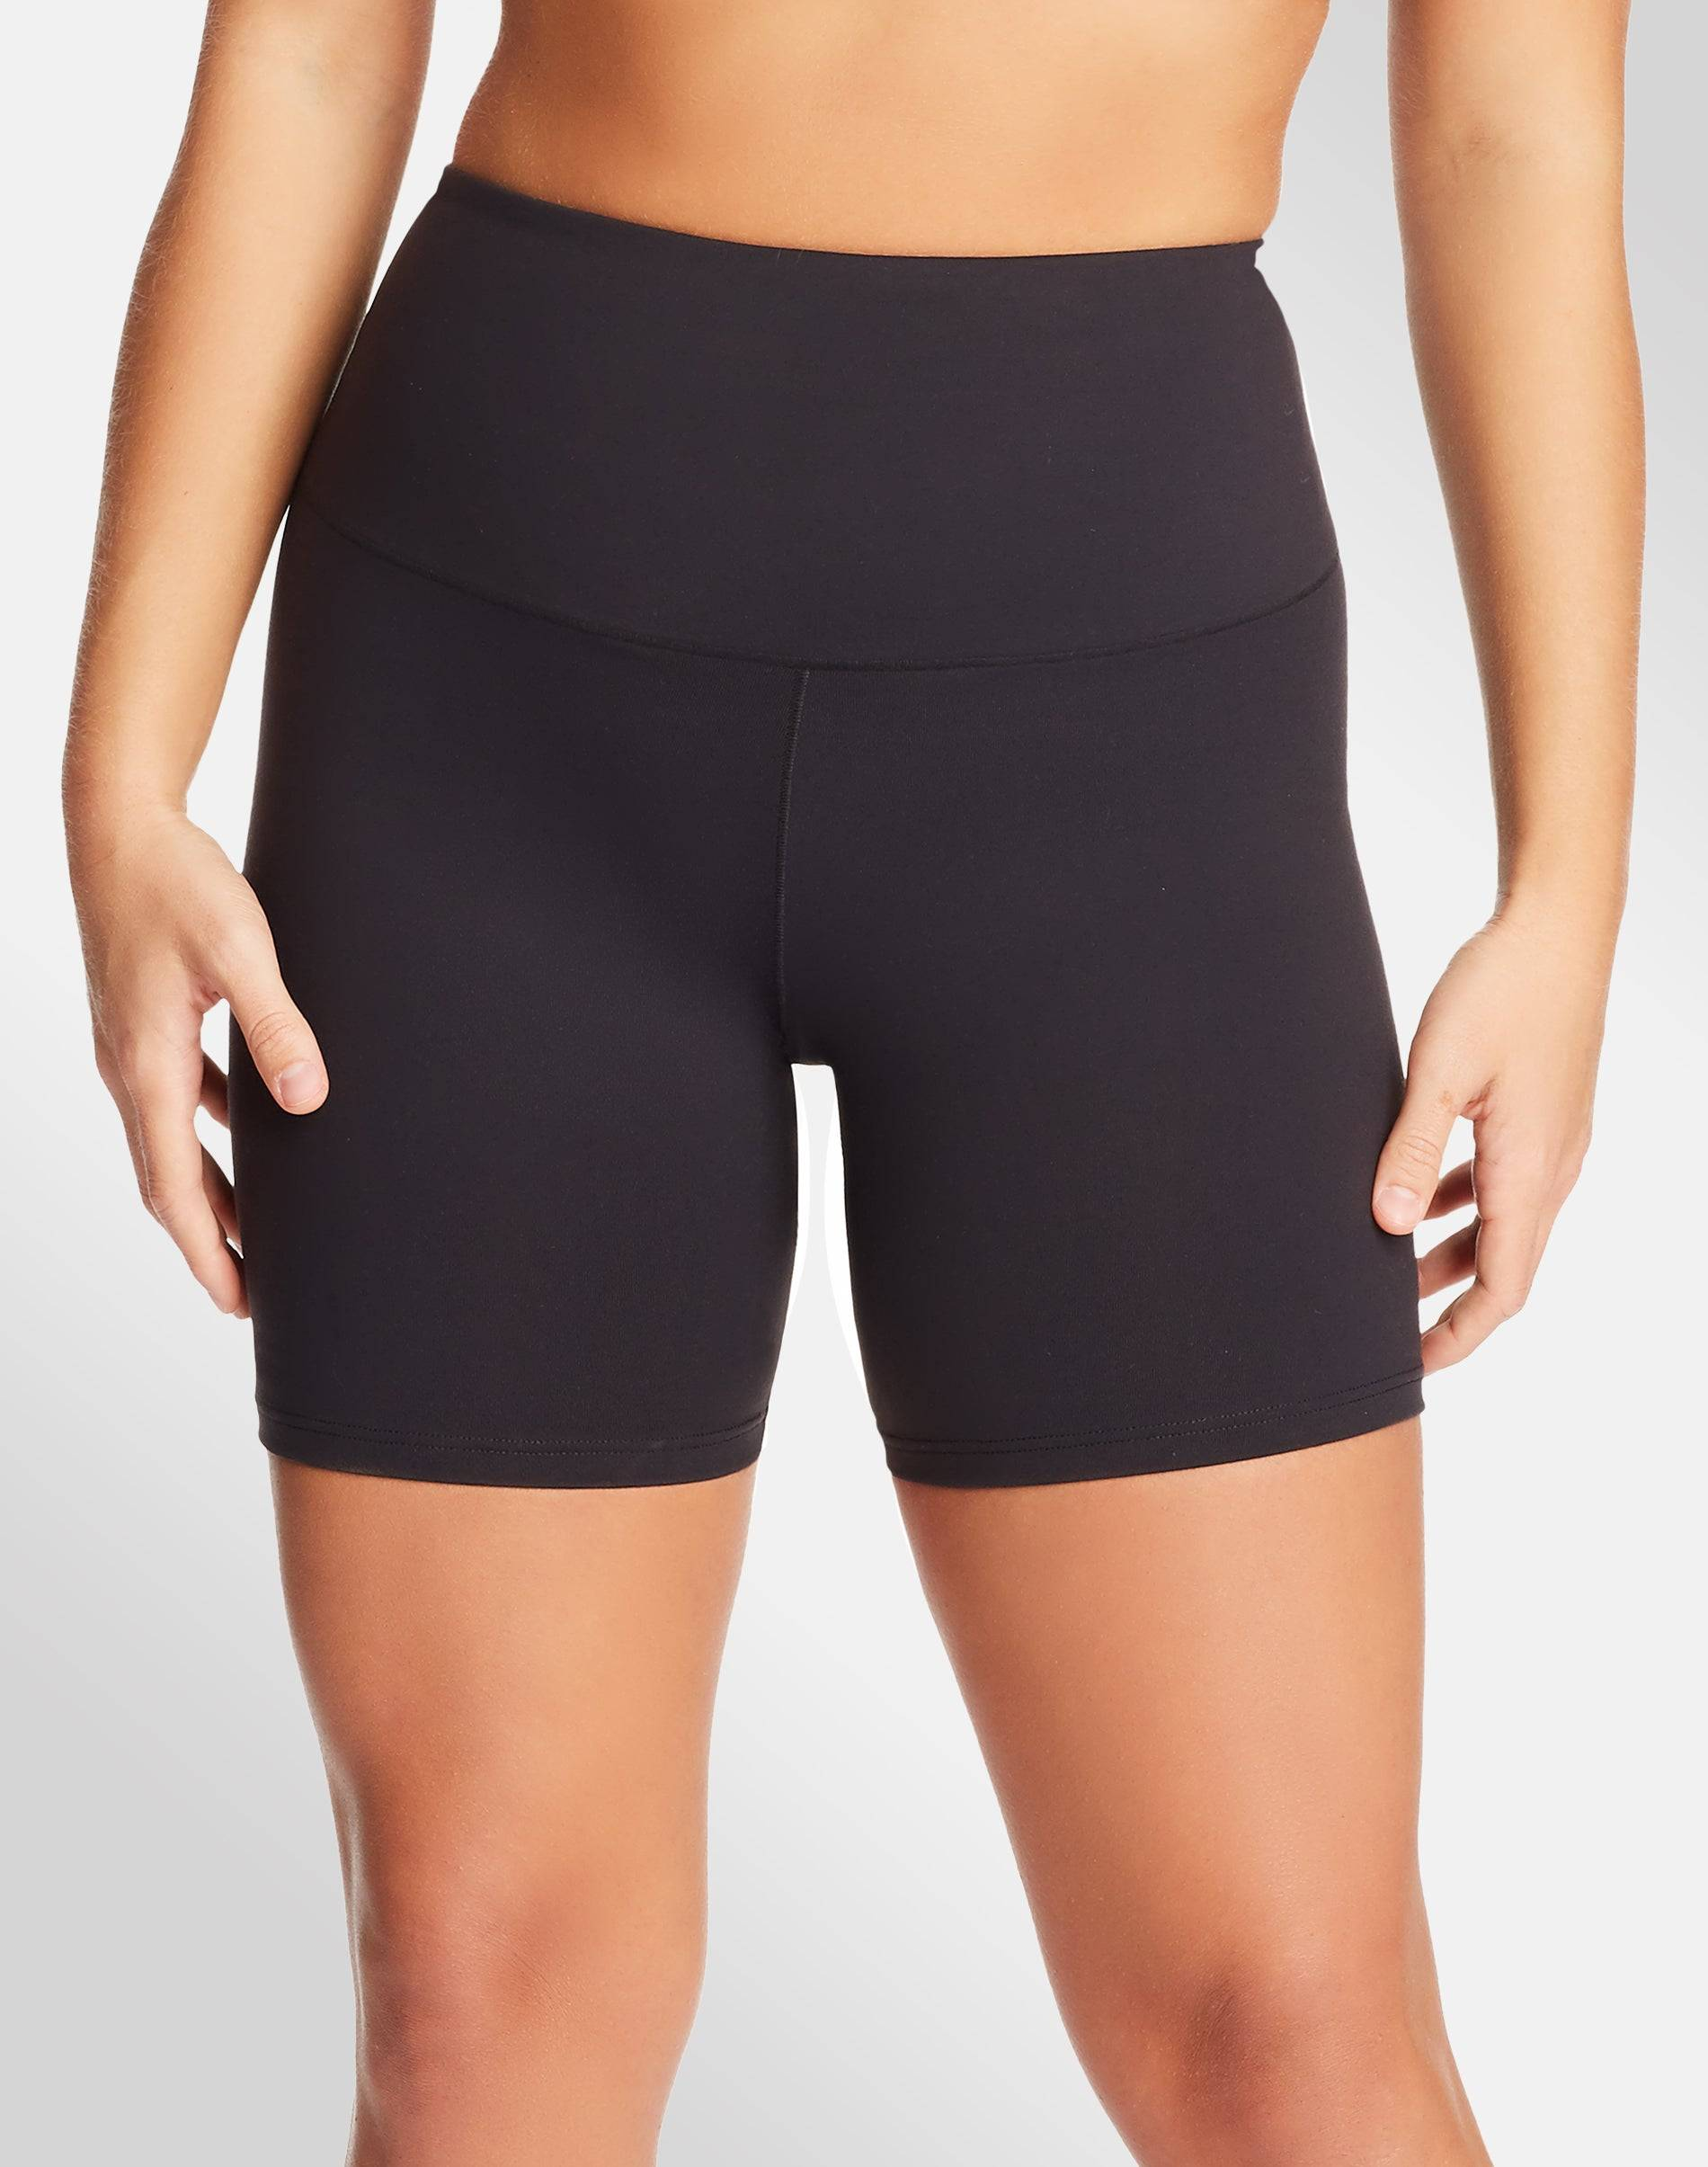 Maidenform Bike Short with Cool Comfort Black M Women's